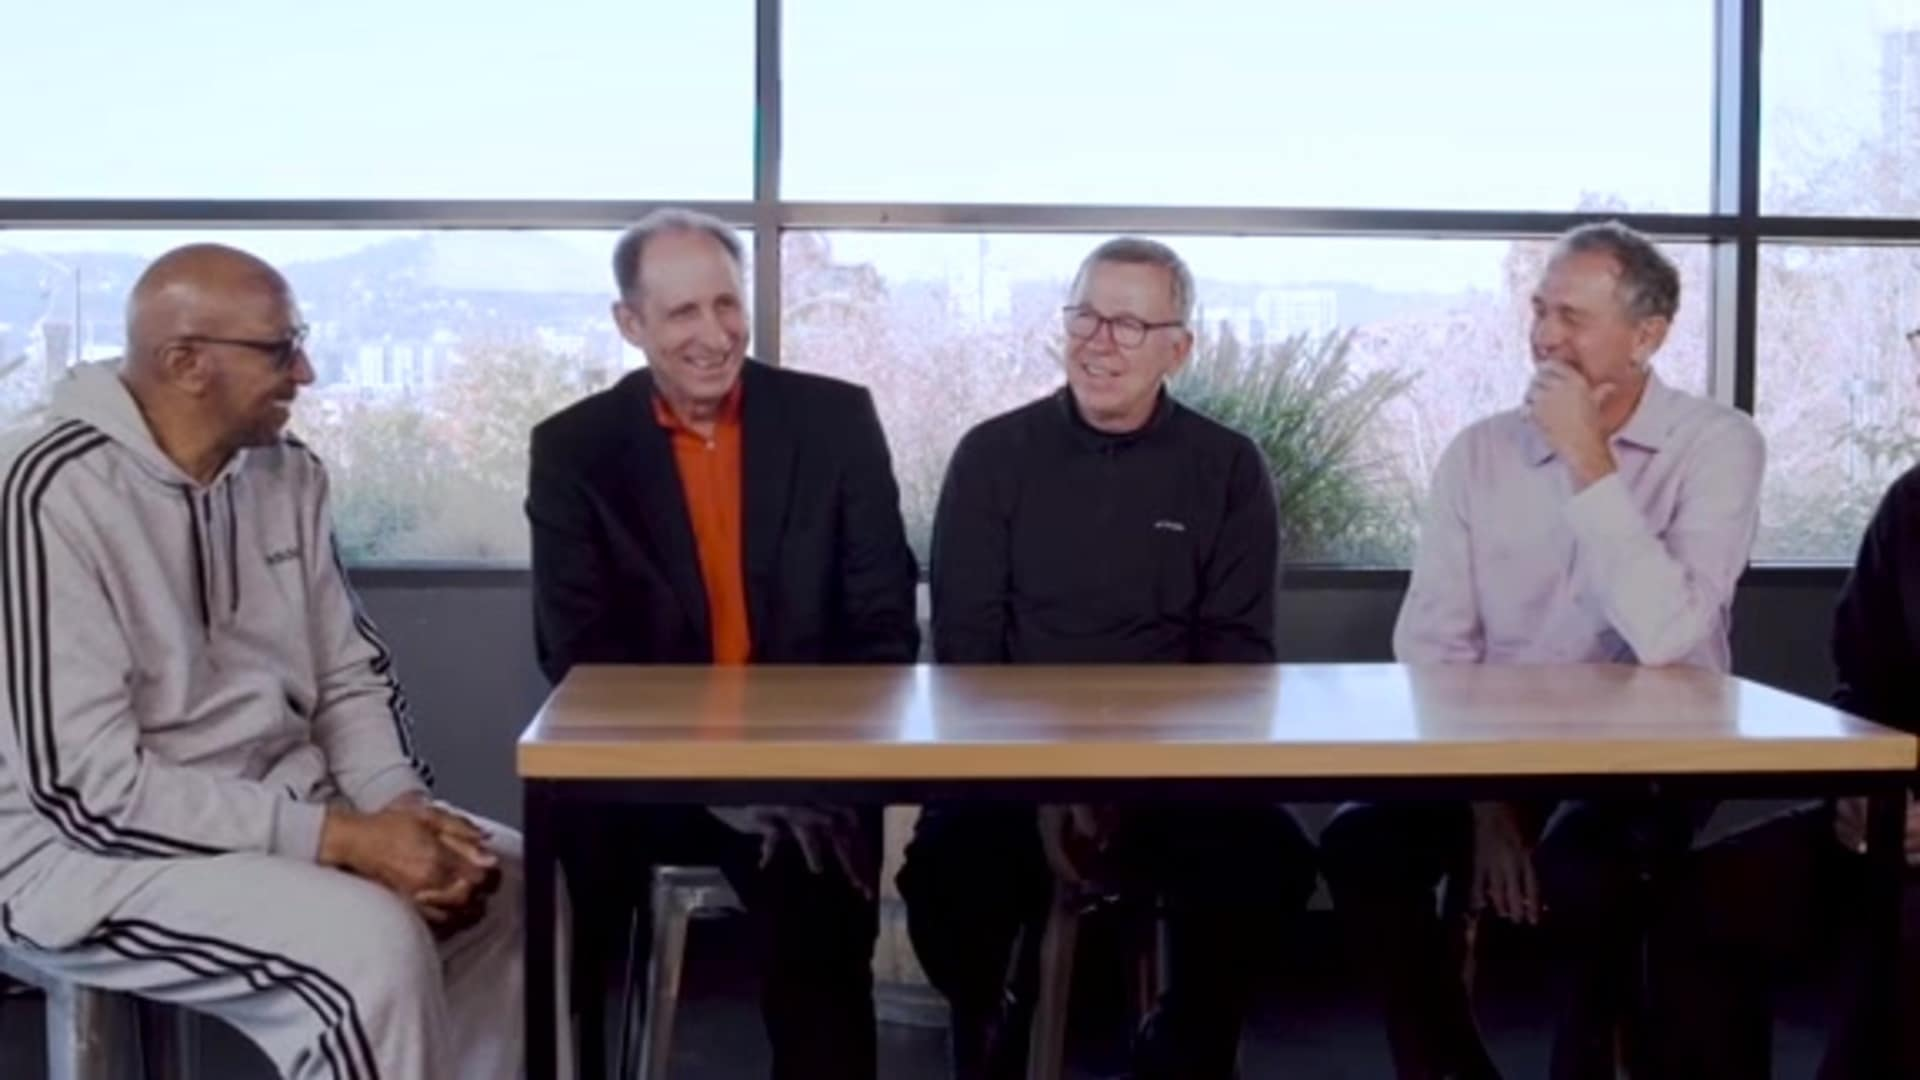 Roundtable Discussion with Trail Blazers from the 1970s